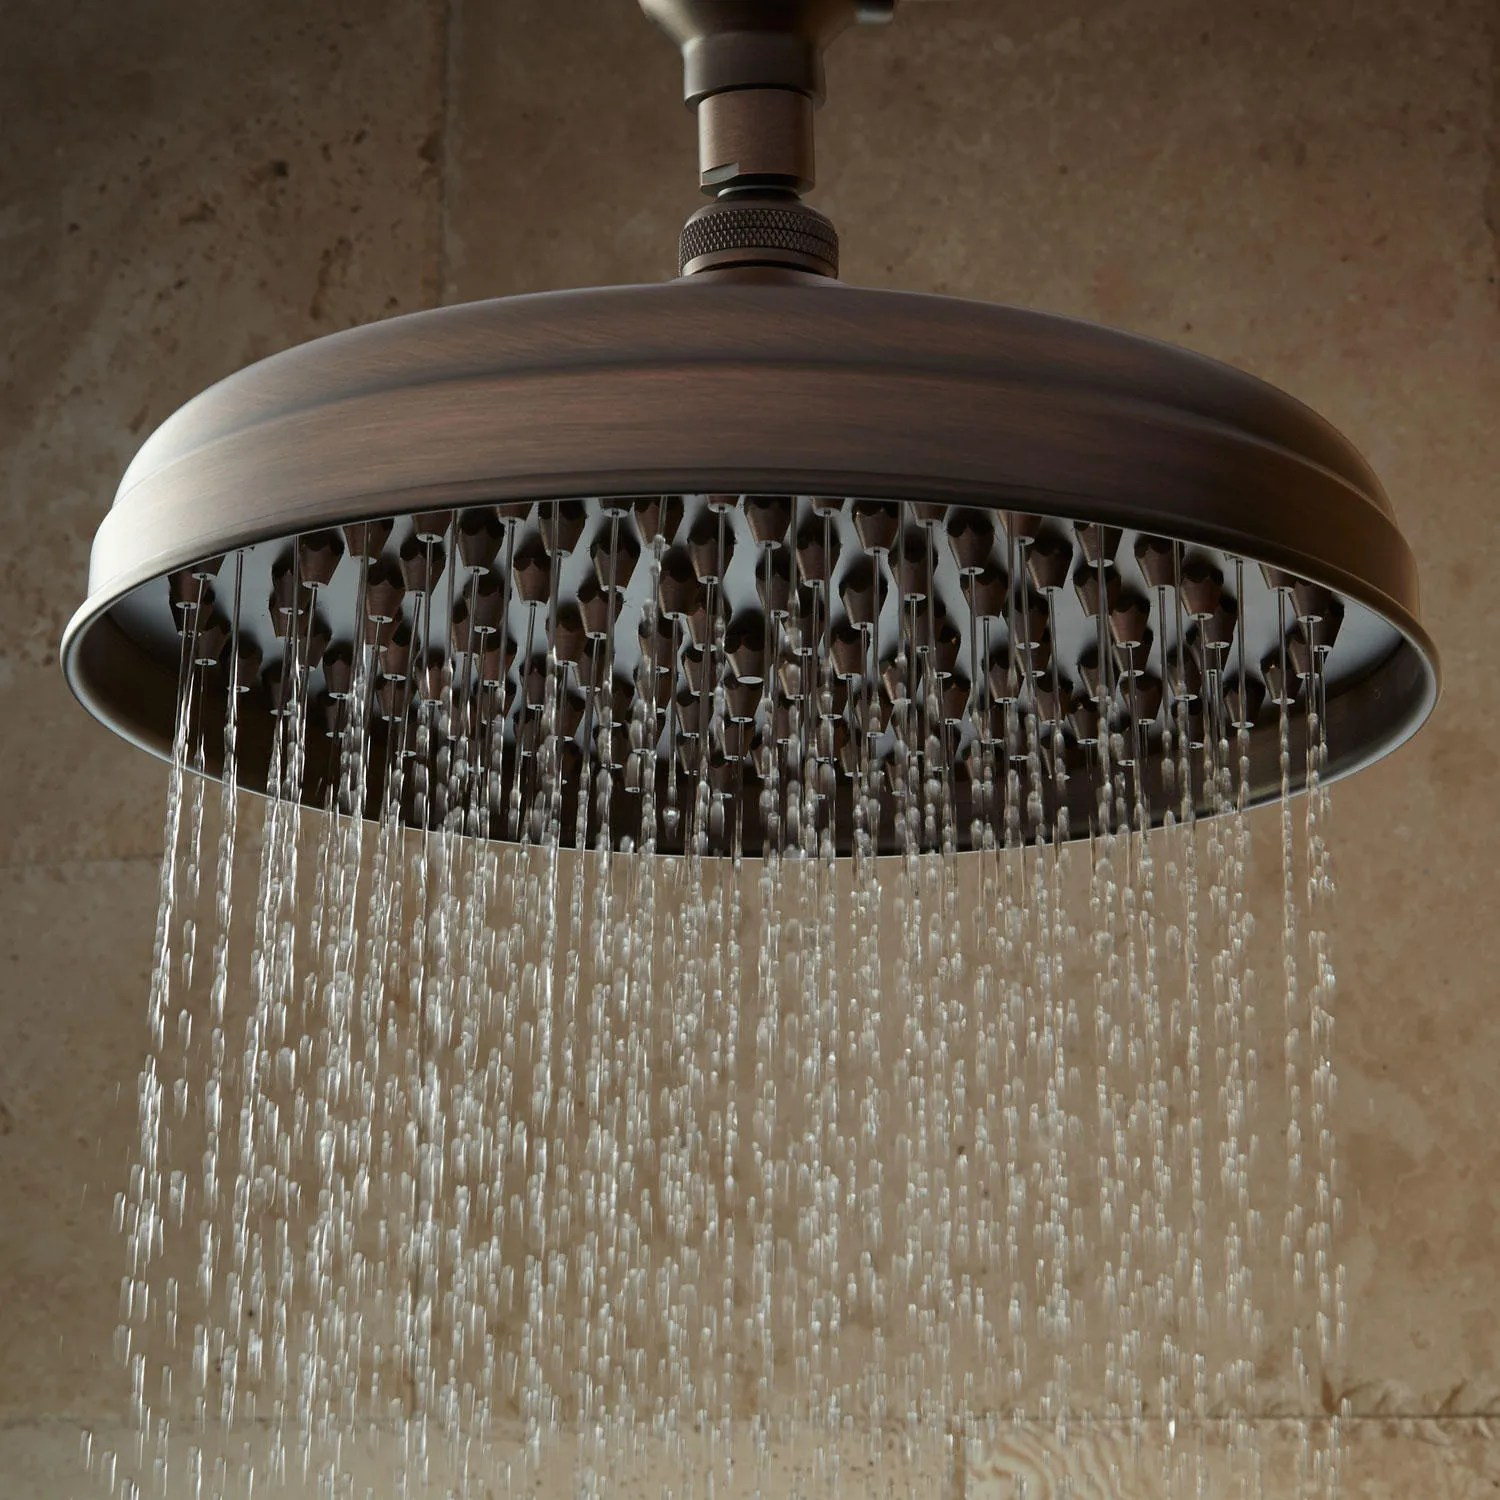 kitchen sinks & faucets outdoor cost lambert rainfall nozzle shower head with ornate arm - bathroom